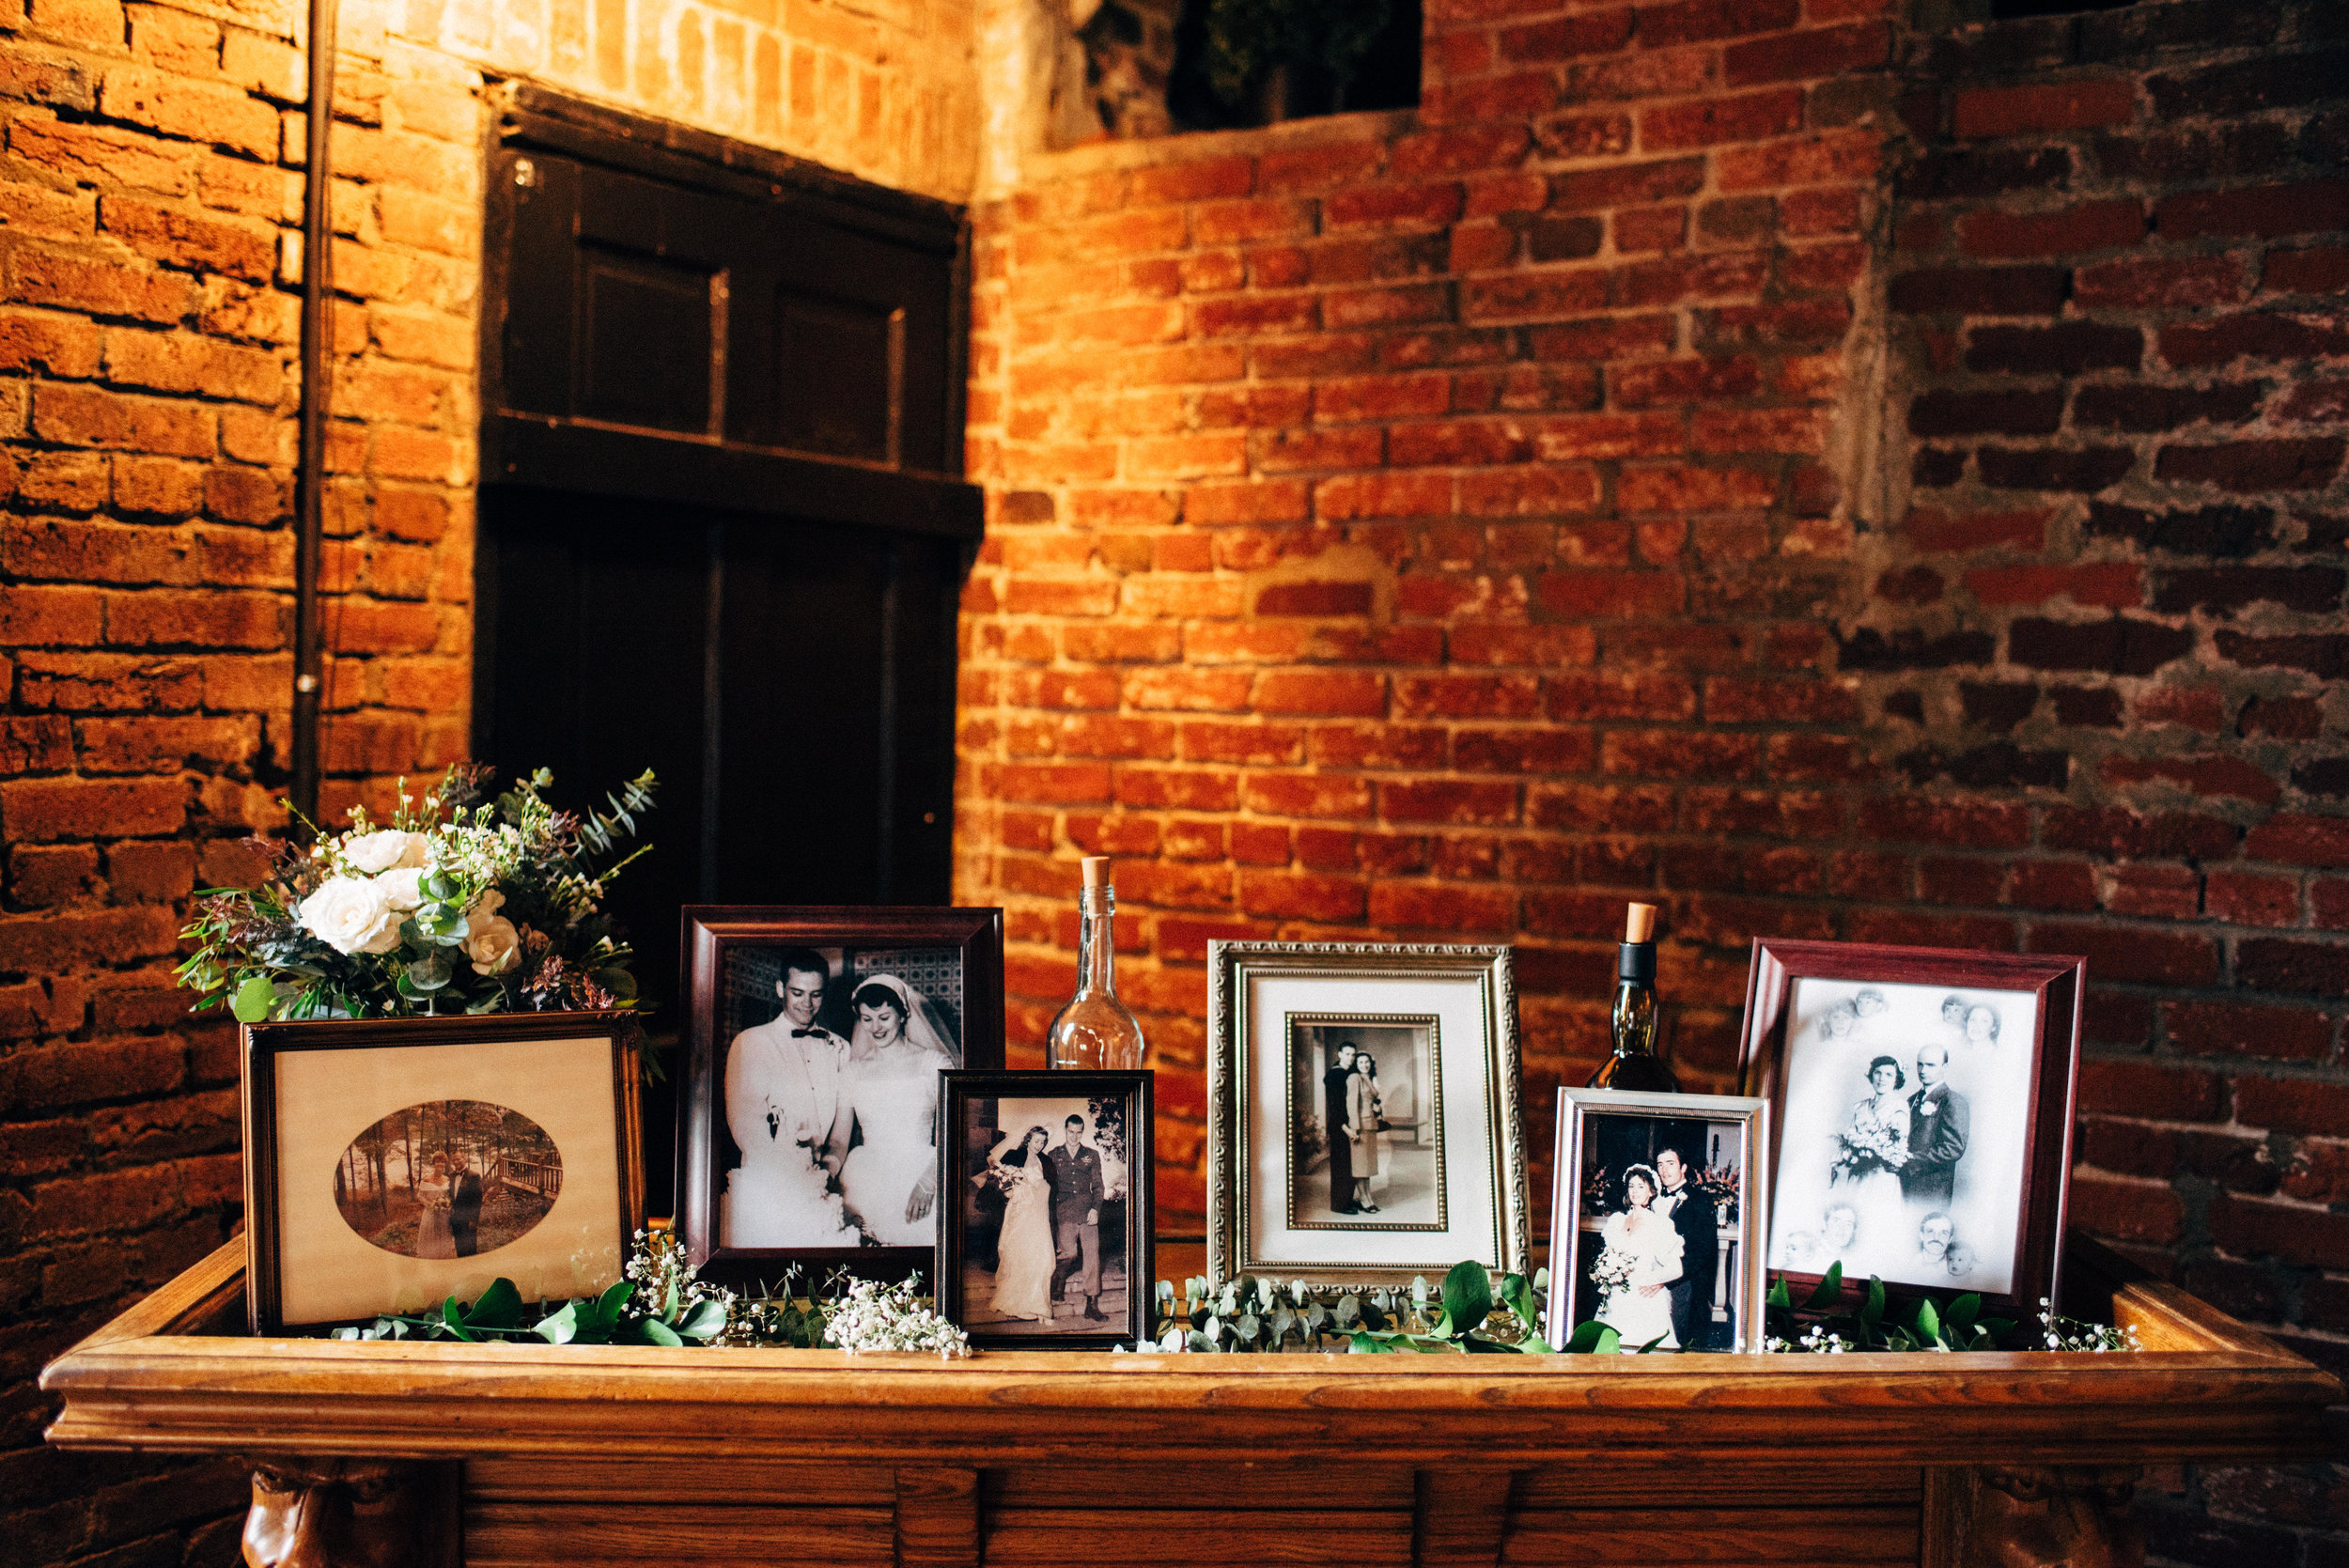 photos of parents' wedding photos at wedding reception at the Inn at the Old Silk Mill